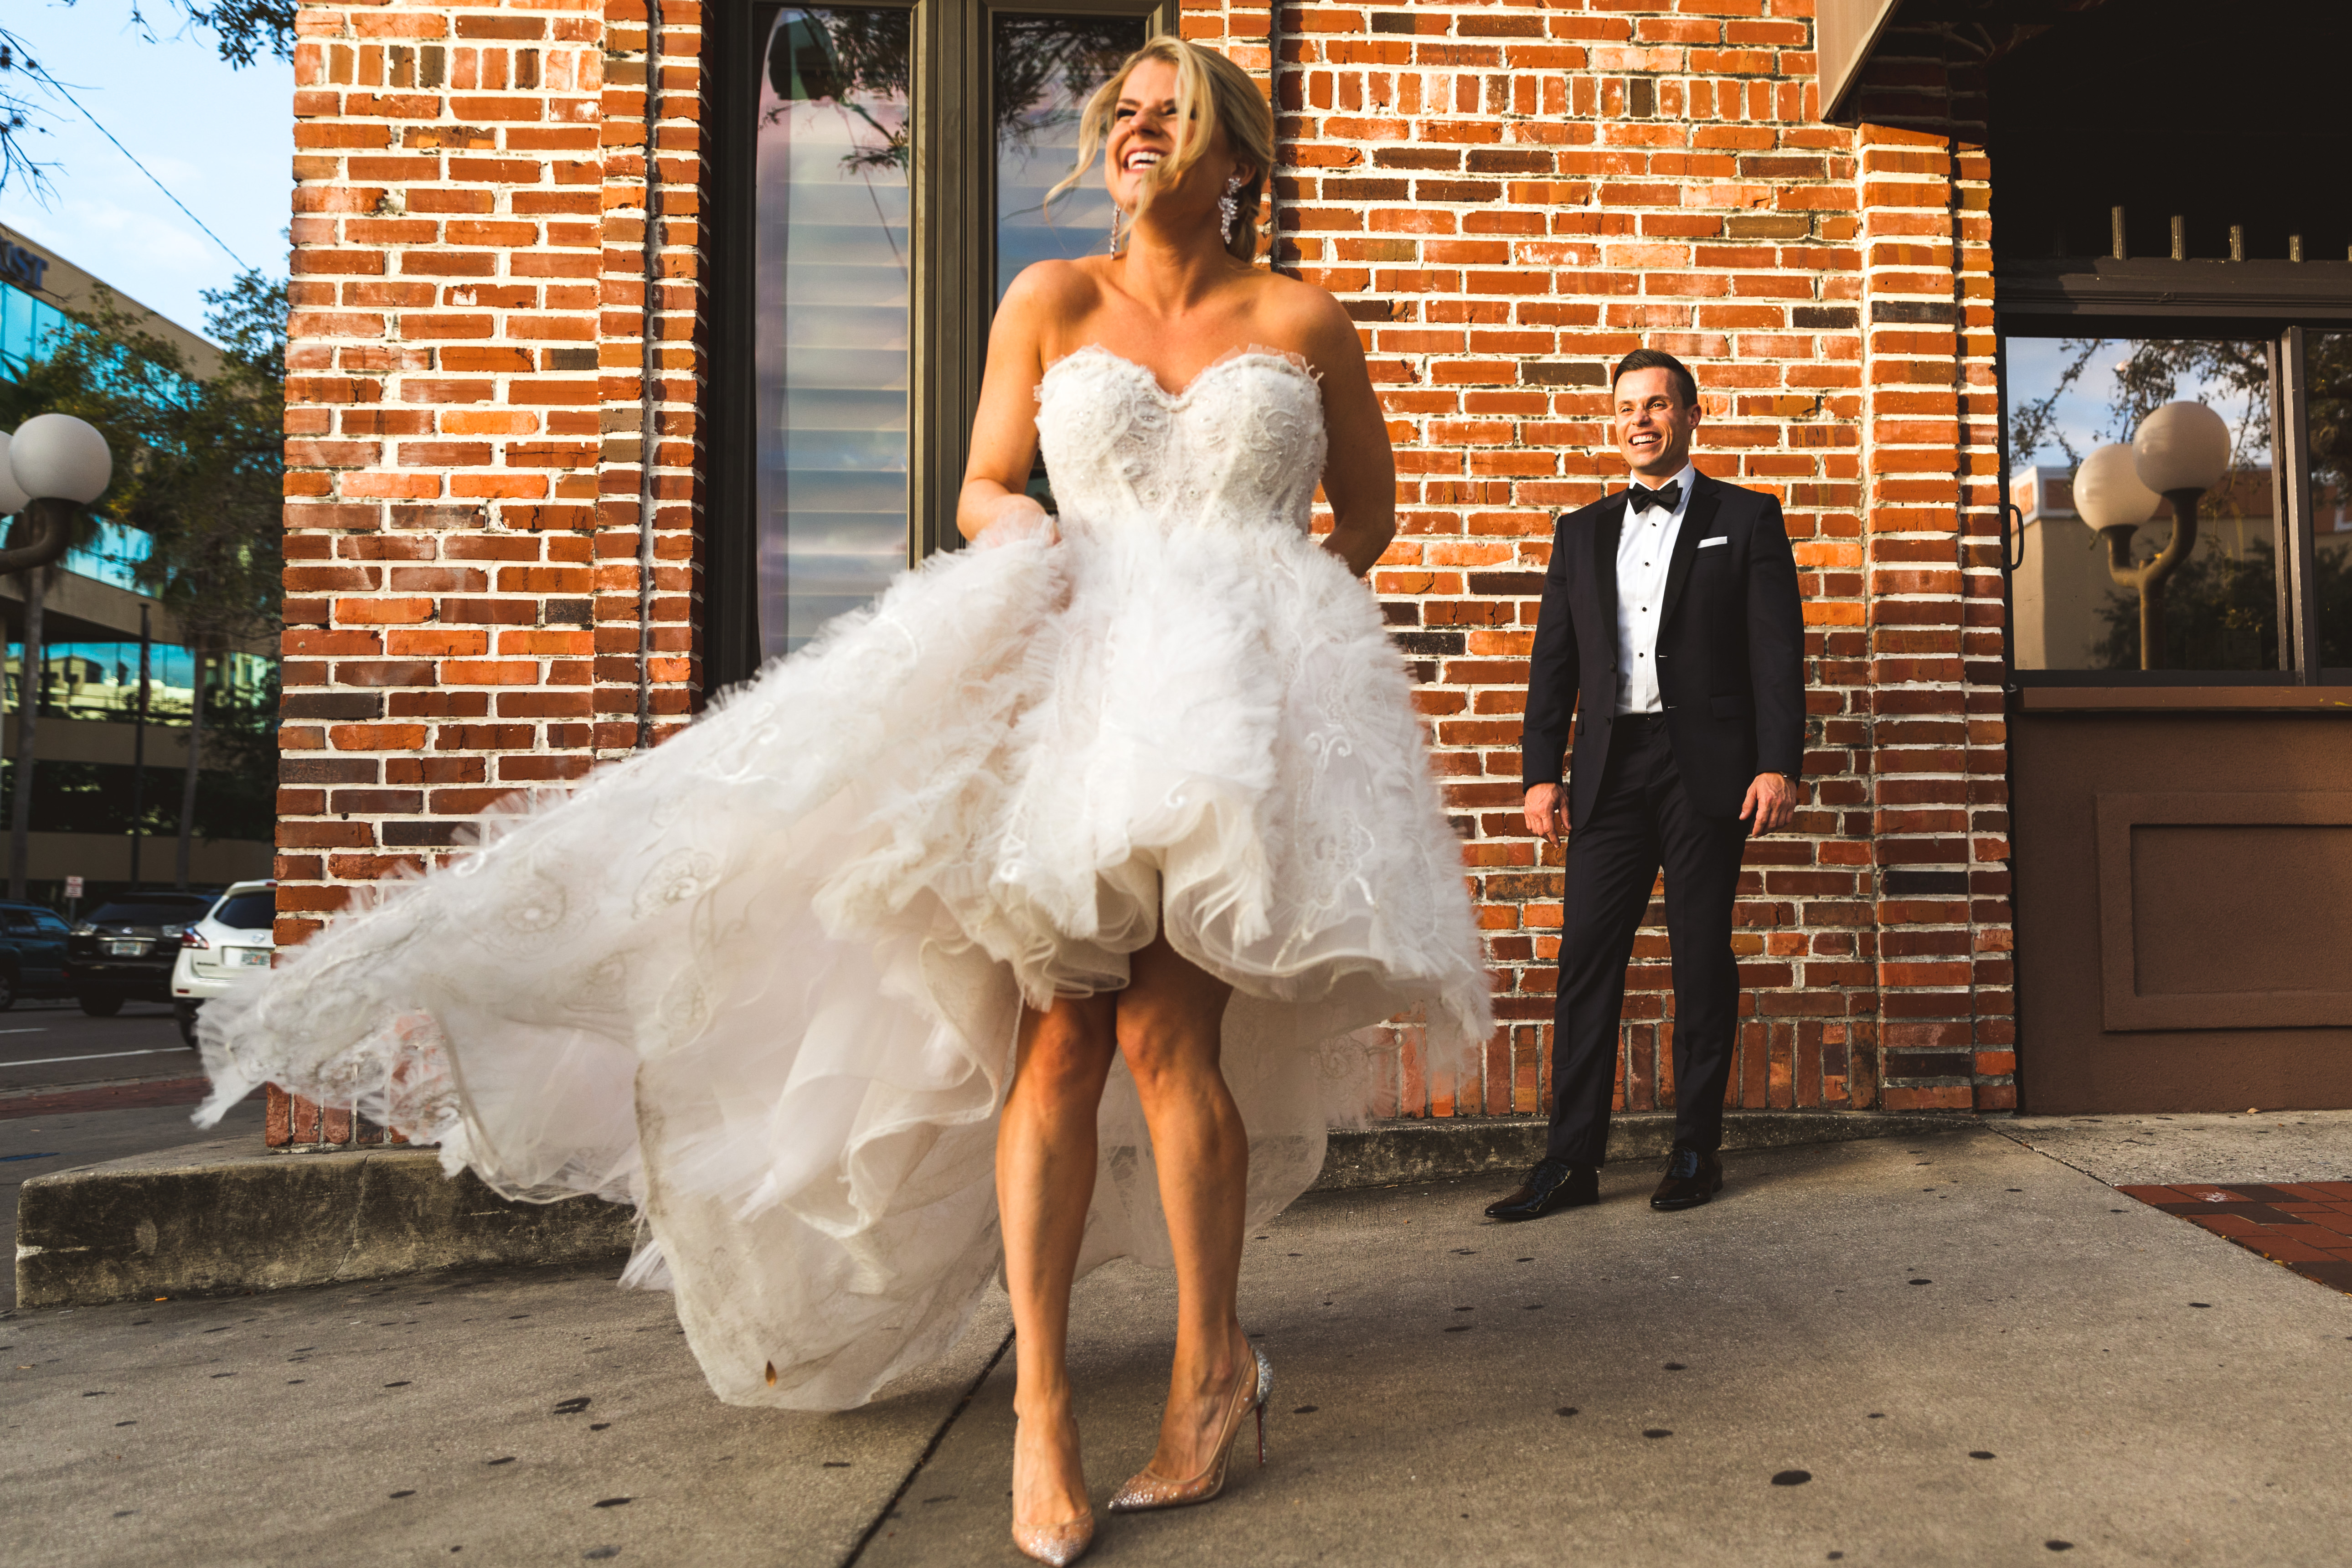 INSTAGRAM Fun Bride and Groom Outdoor St. Pete Wedding Portrait, Bride in Ruffle High Low Wedding Skirt and Strapless Dress, Clear Pointed Toe Wedding Shoes, Groom in Black Tuxedo   Wedding Dress Shop Isabel O'Neil Bridal Collection